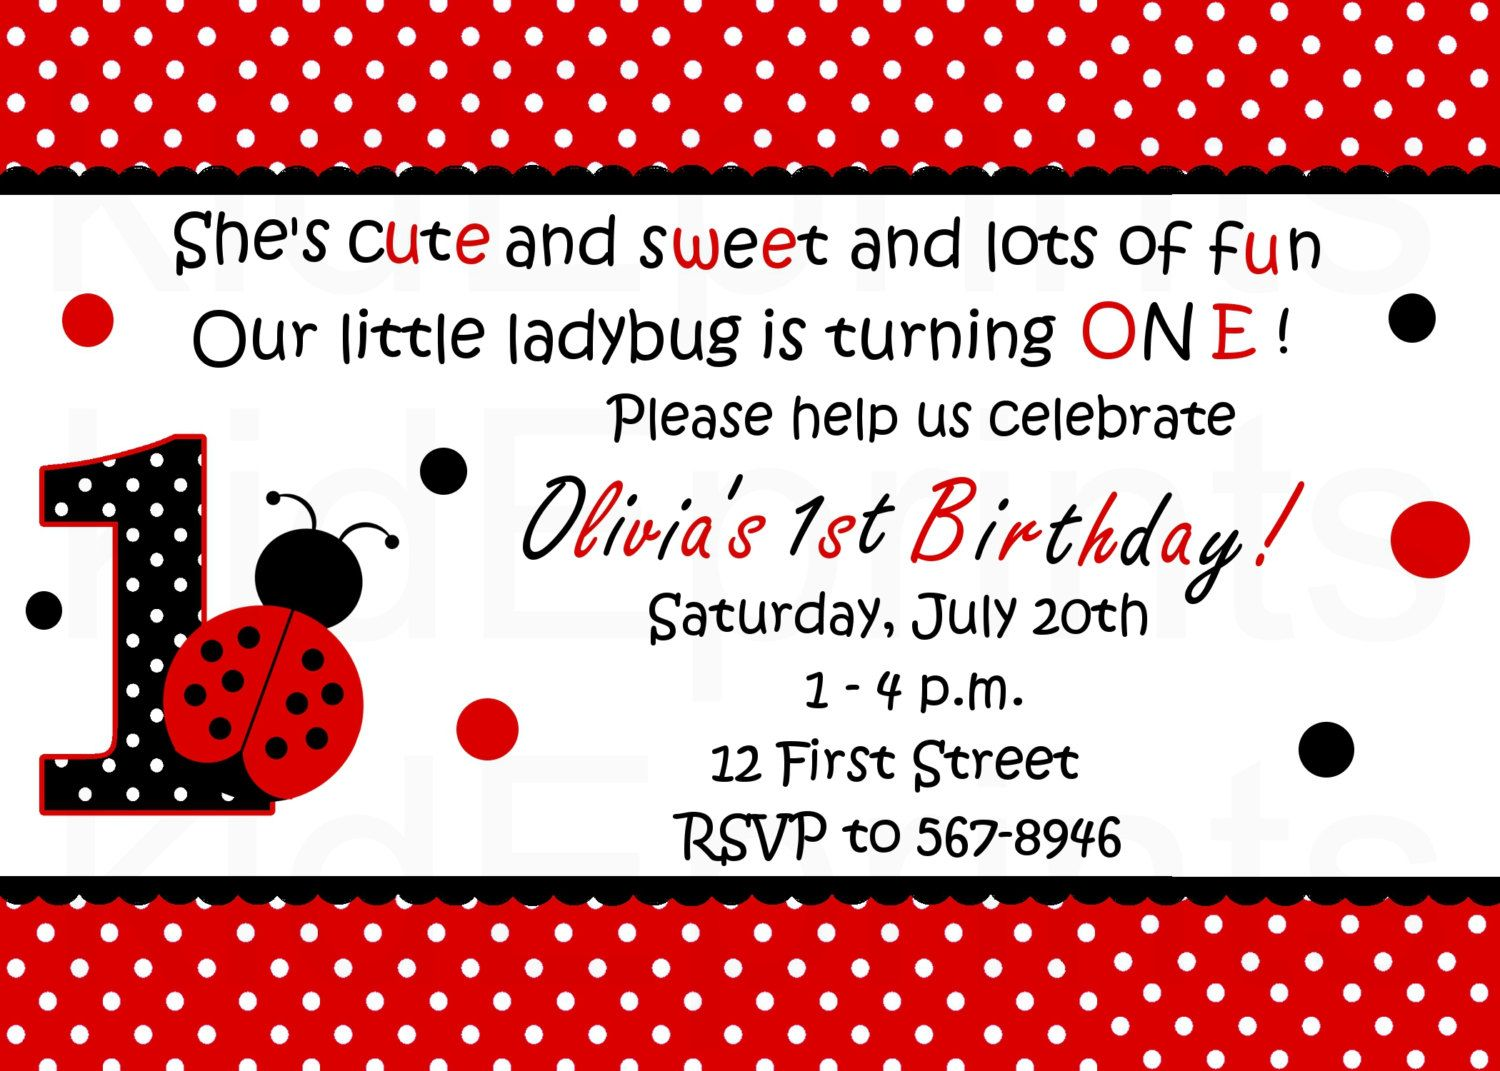 Printable ladybug invitation red ladybug birthday party printable ladybug invitation red ladybug birthday party invitations ladybug birthday invites ladybug photo invitations filmwisefo Choice Image